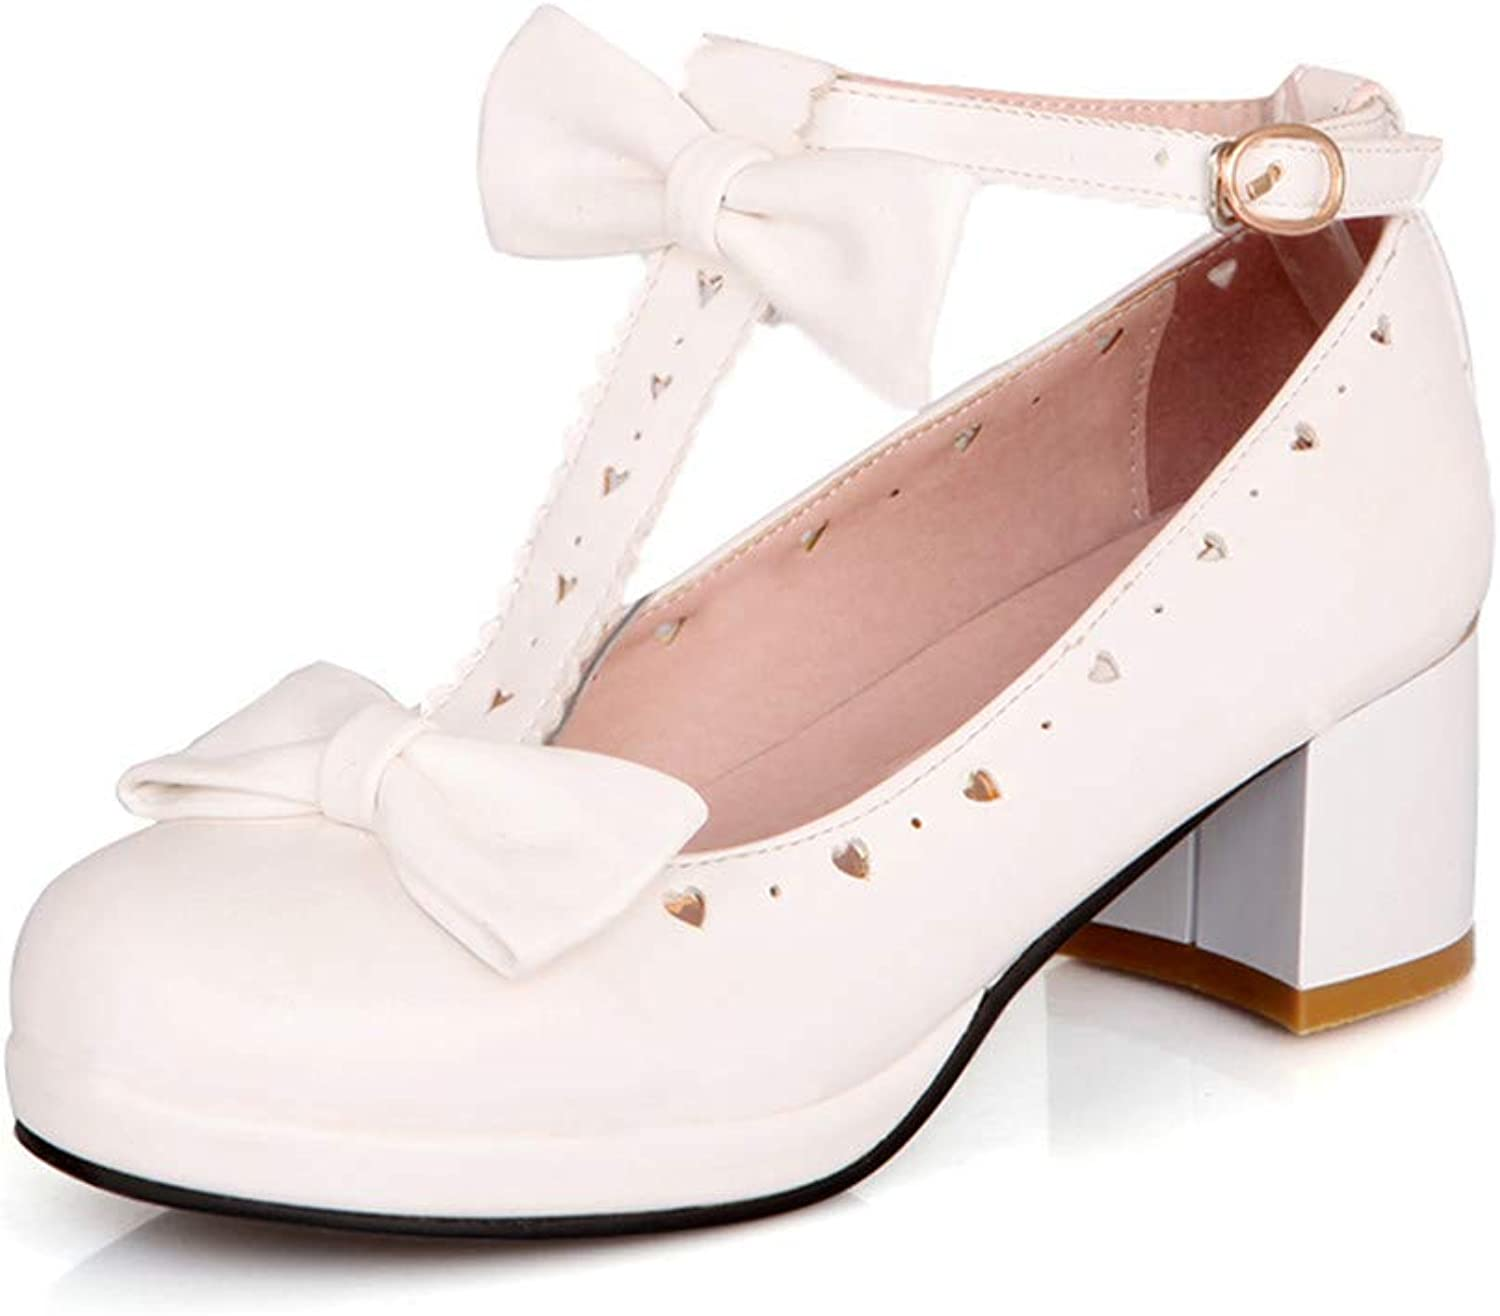 CHENSF Women's Beautiful lace Bow T-Shaped Low Heel shoes